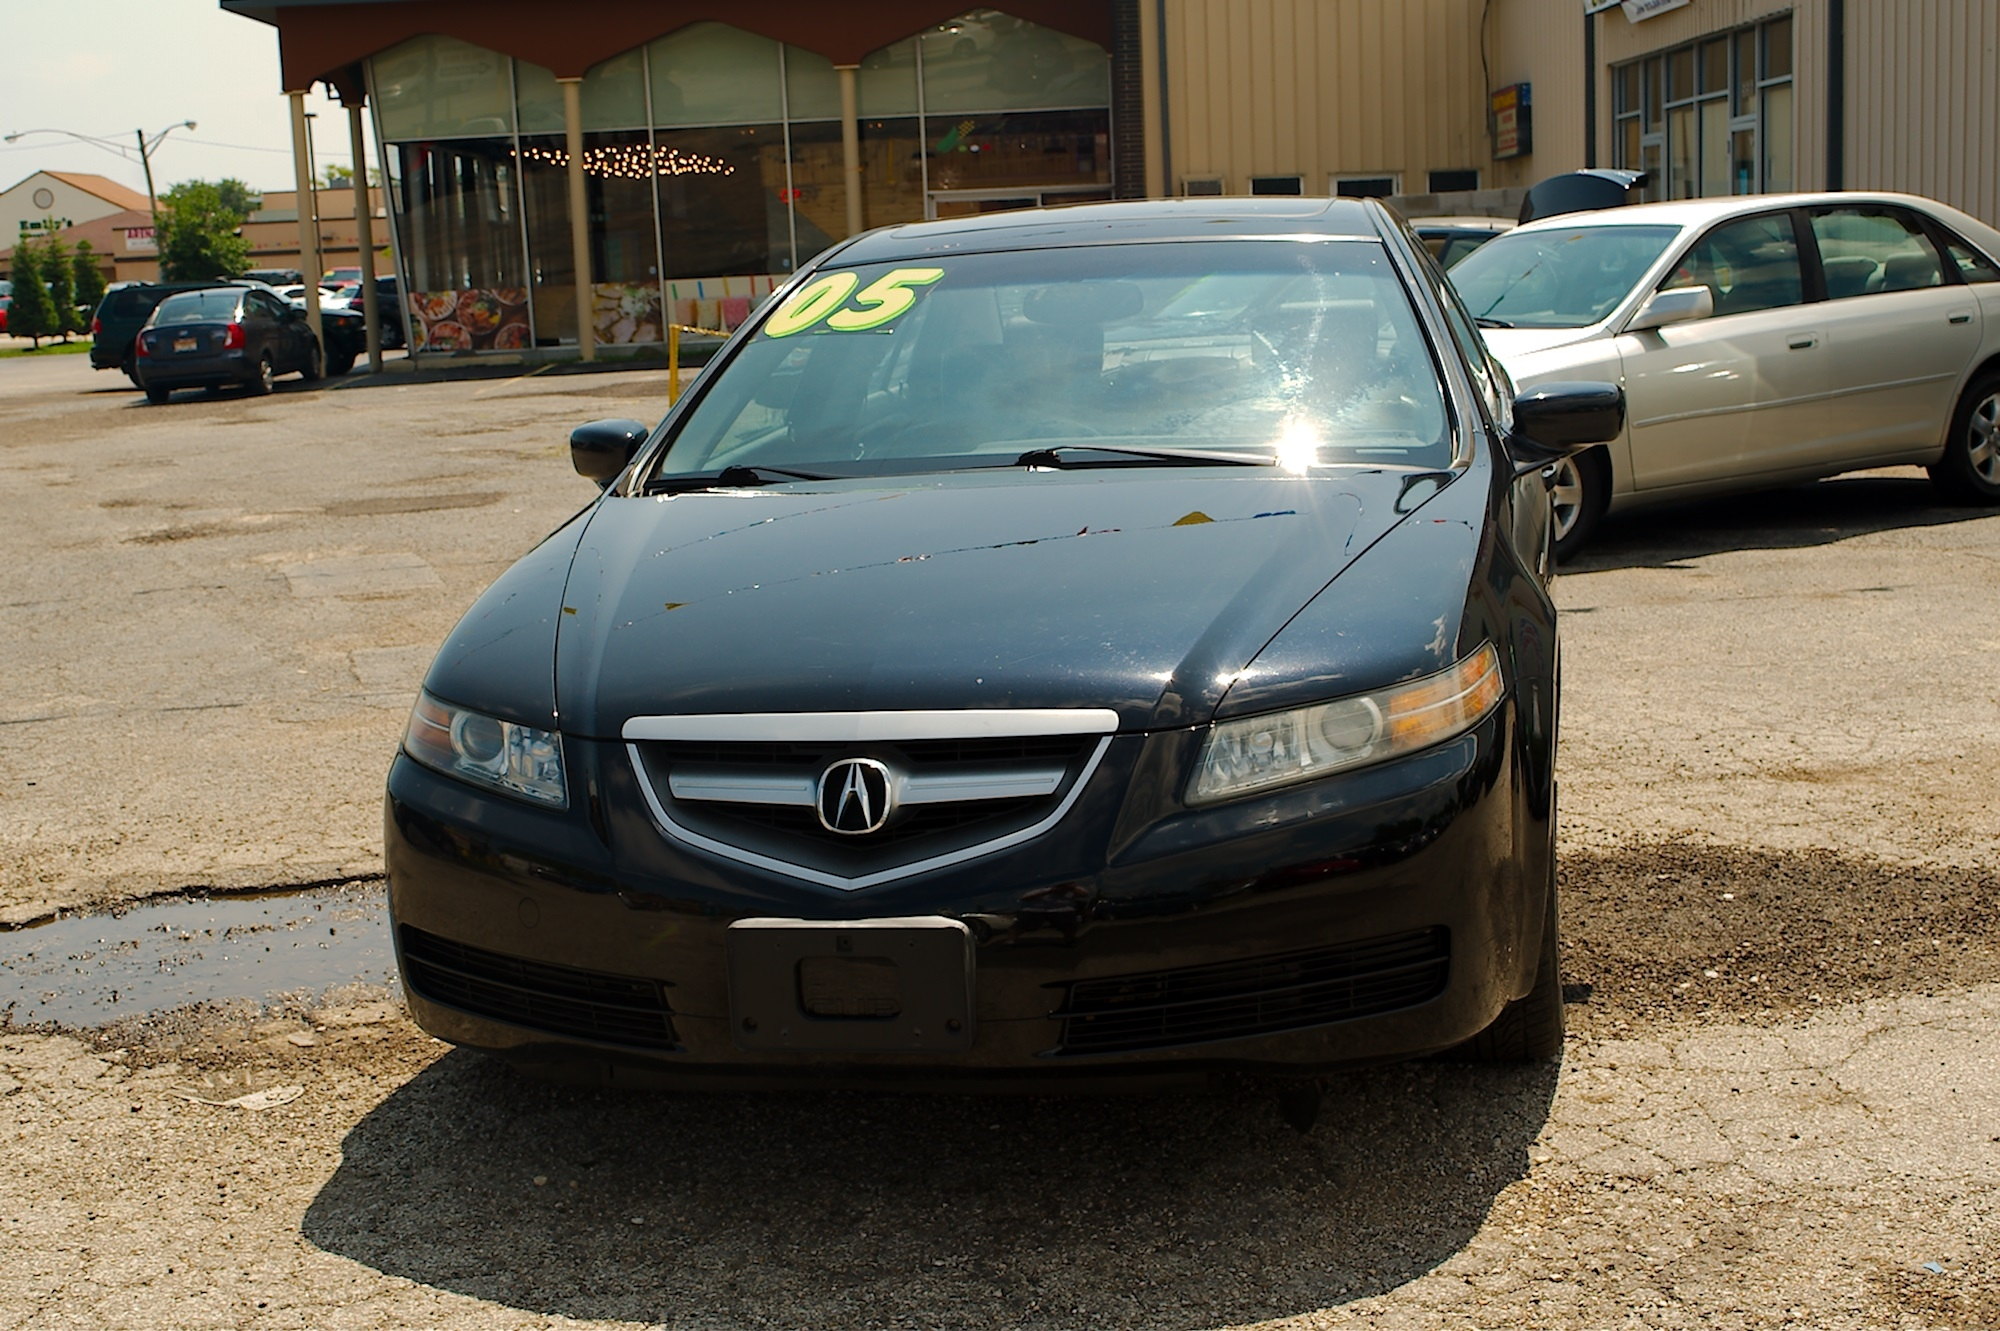 2005 Acura TL Navigation Black Used Sedan Sale Gurnee Kenosha Mchenry Chicago Illinois